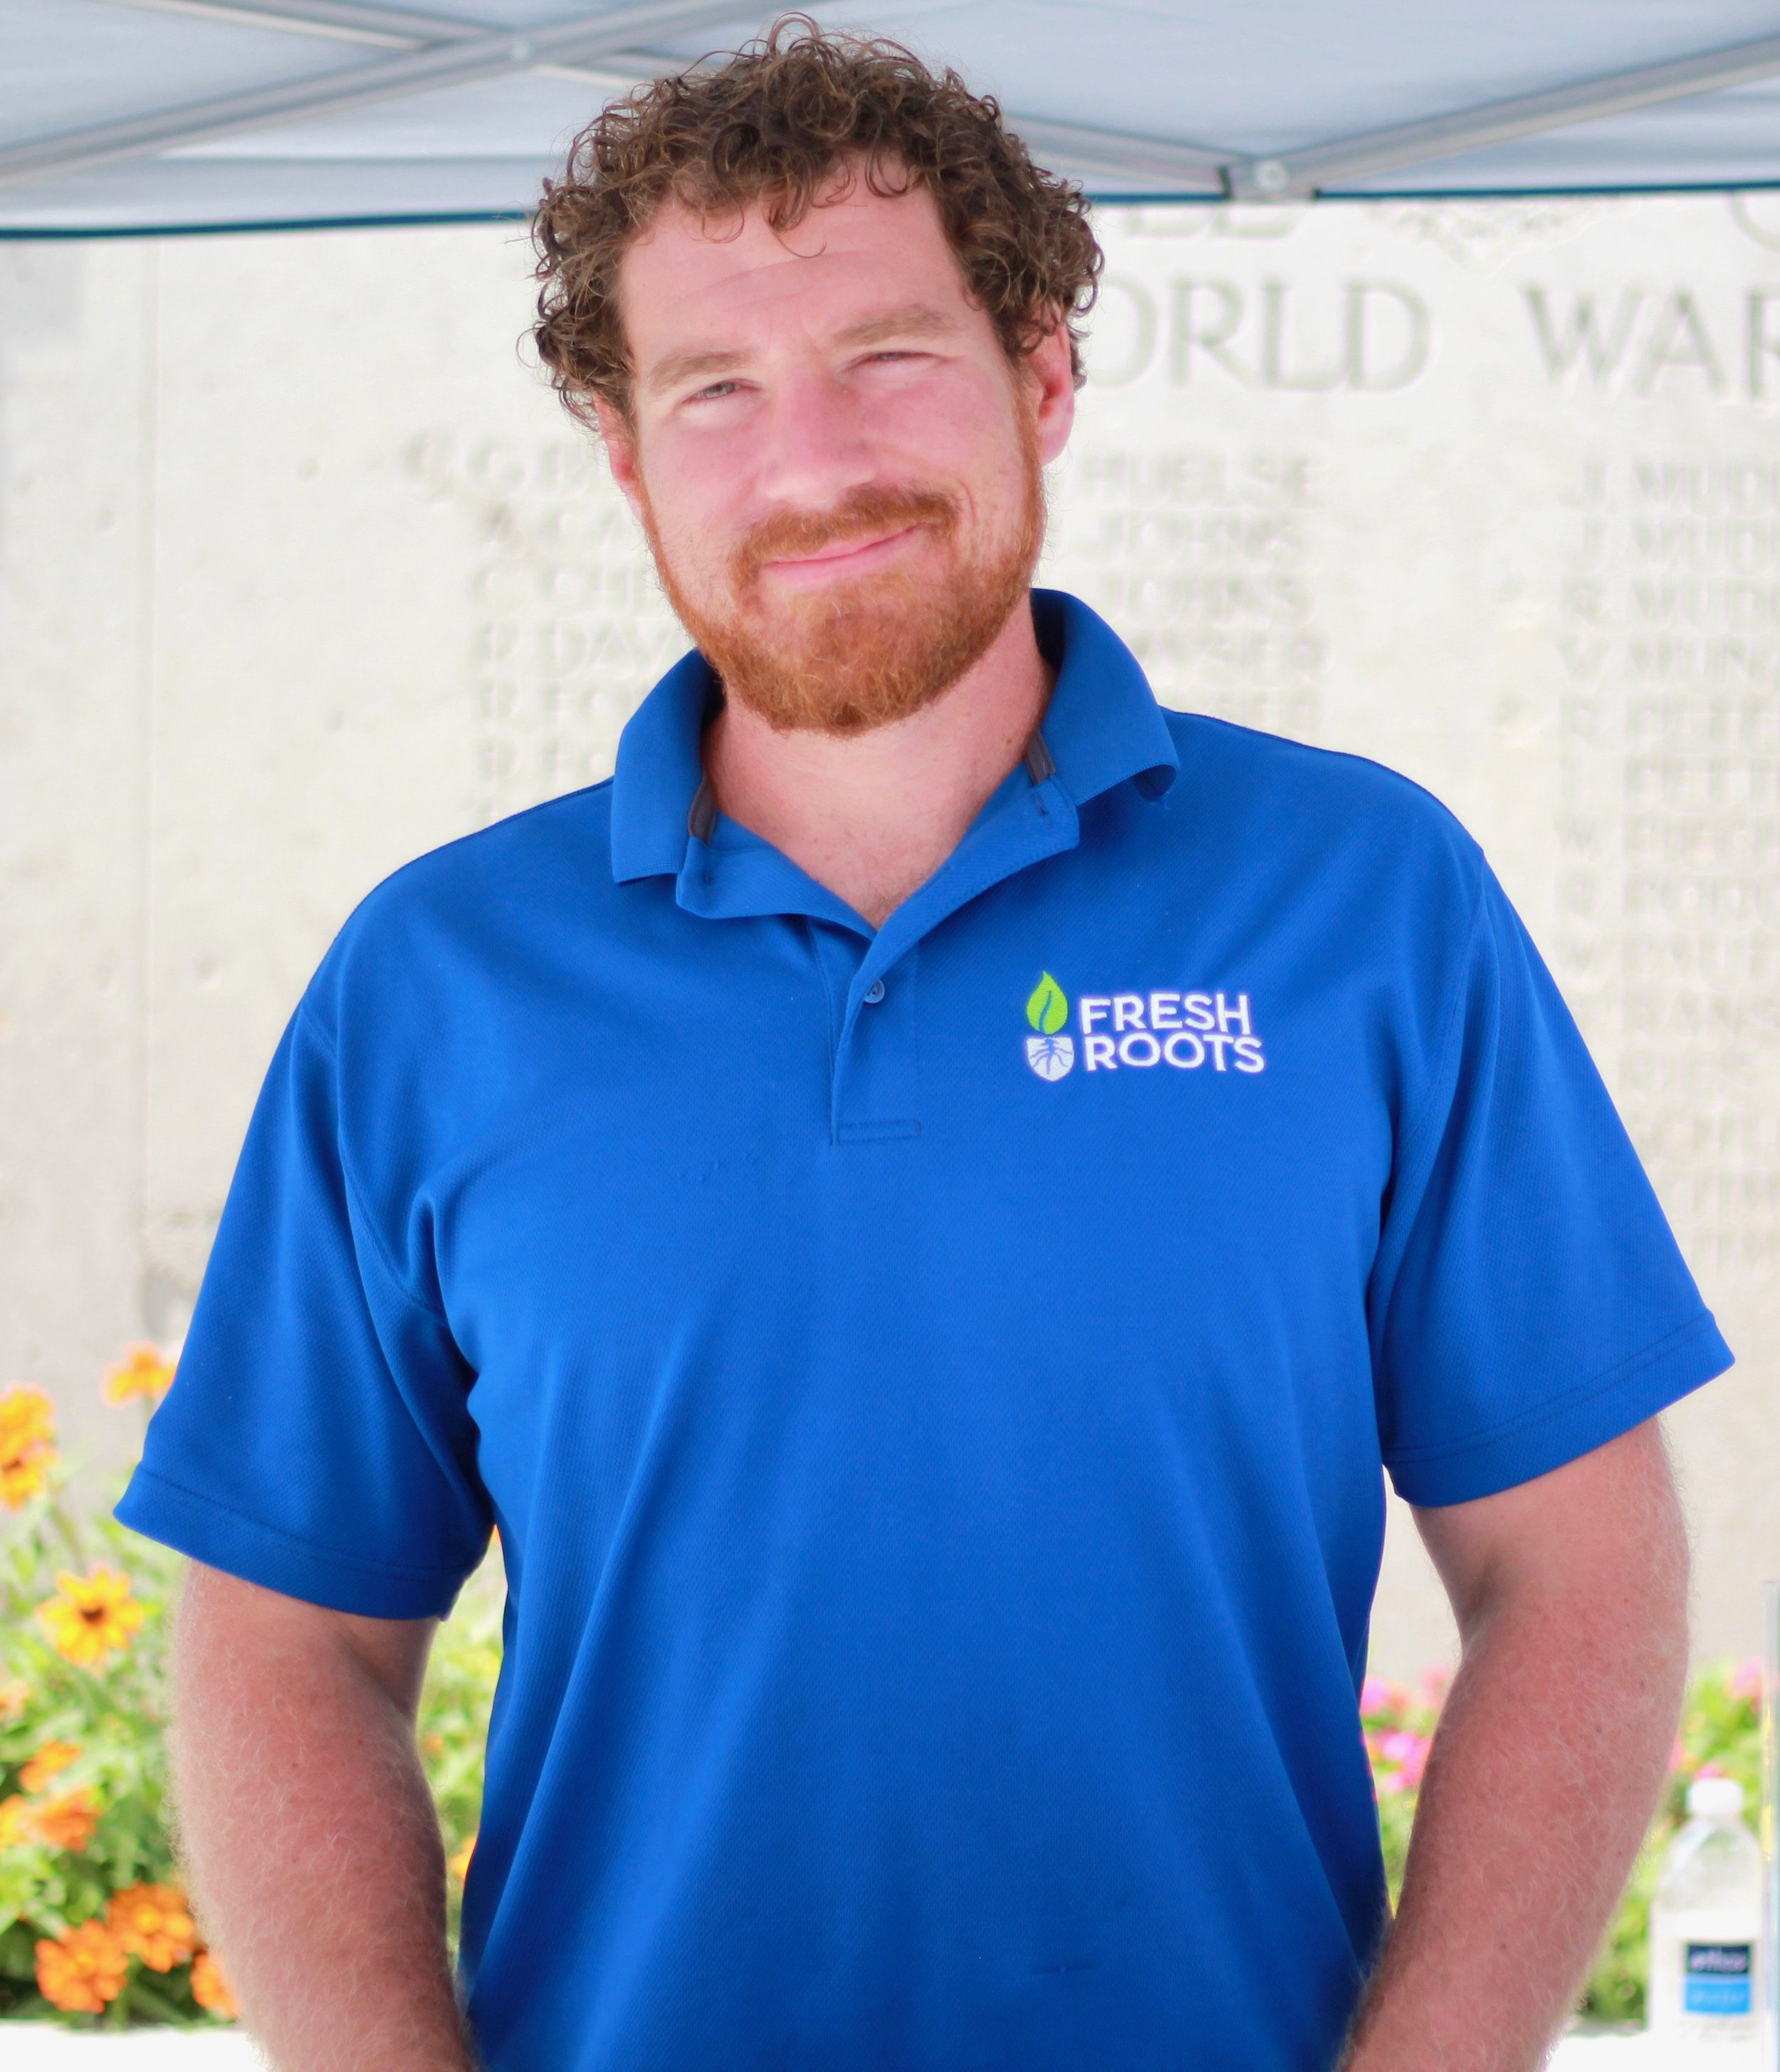 Meet Alec Lepoidevin - owner of fresh roots and a Master Gardener